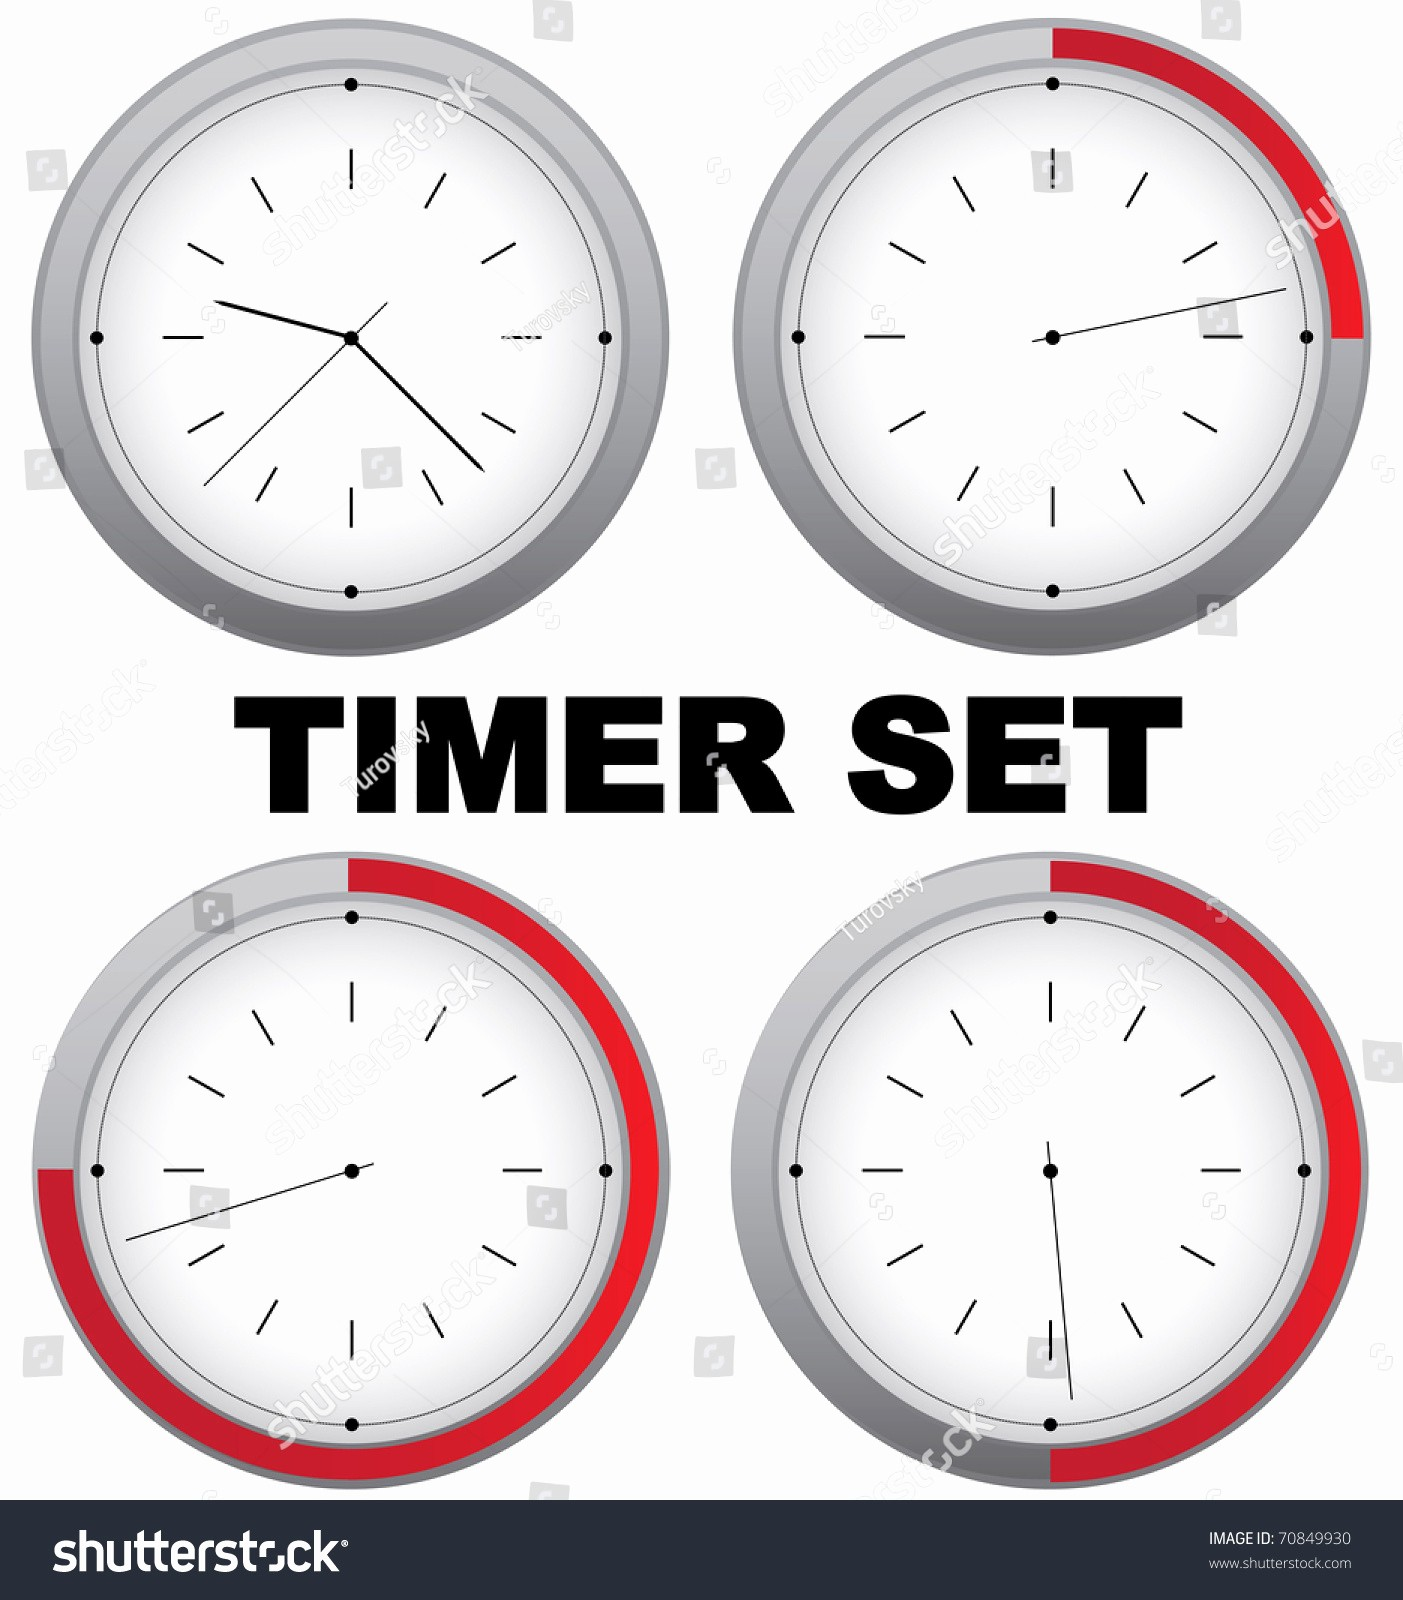 Set A 15 Min Timer Luxury Raster Set Timers with 15 Min Interval Vector